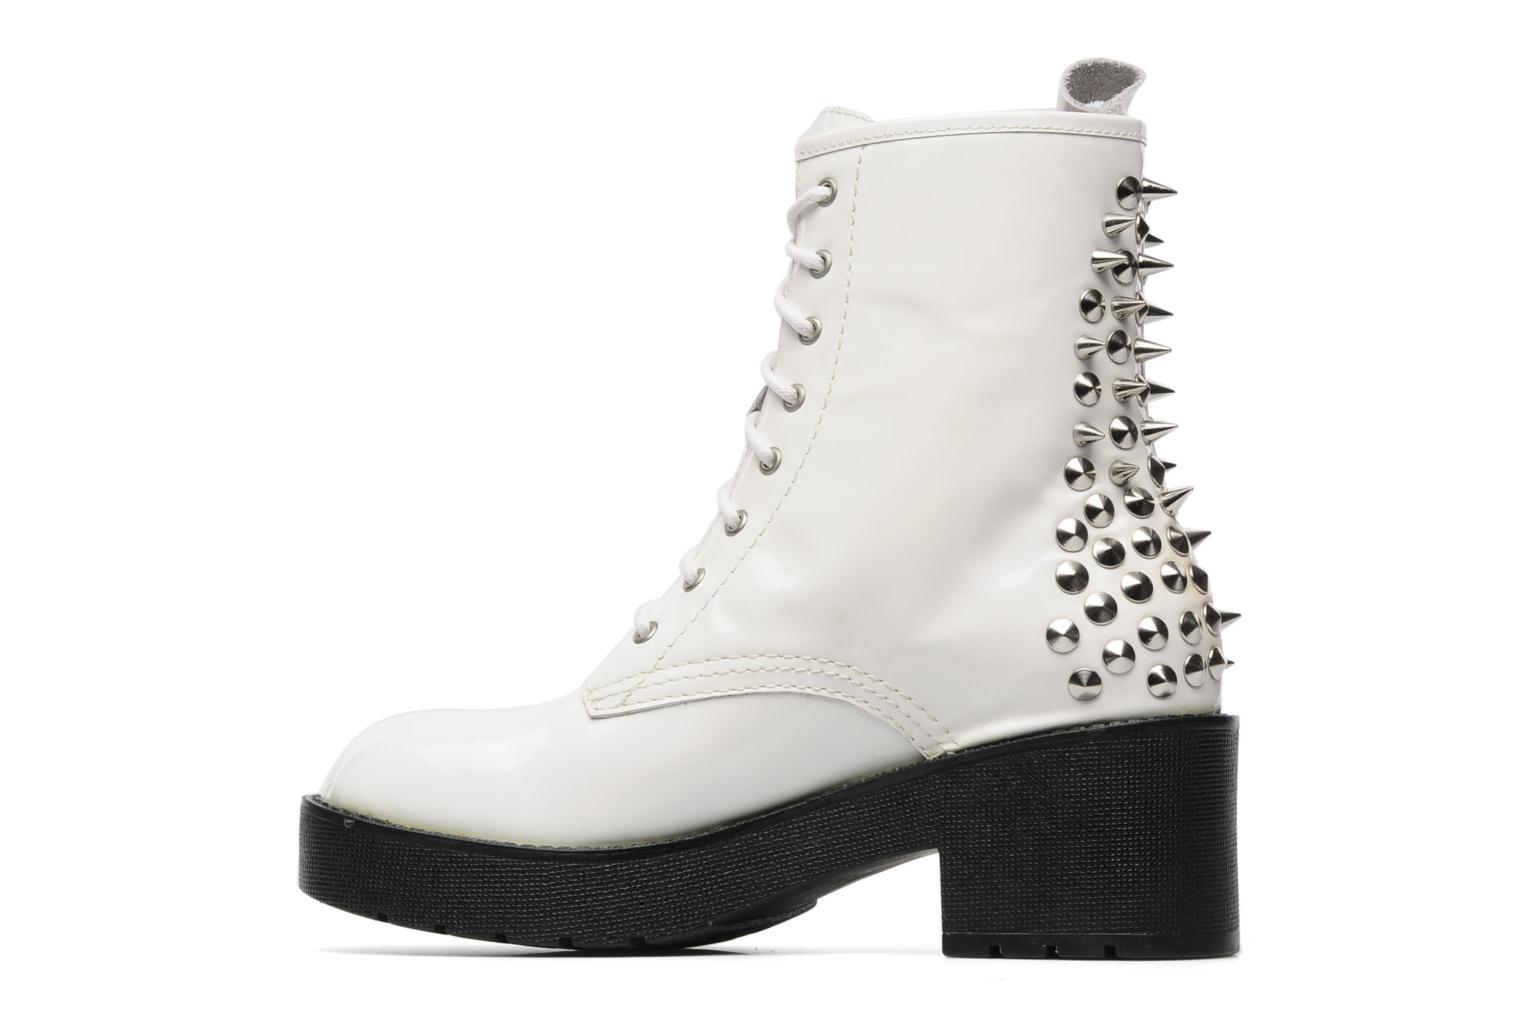 Bottines et boots Jeffrey Campbell 8TH STREET Blanc vue face